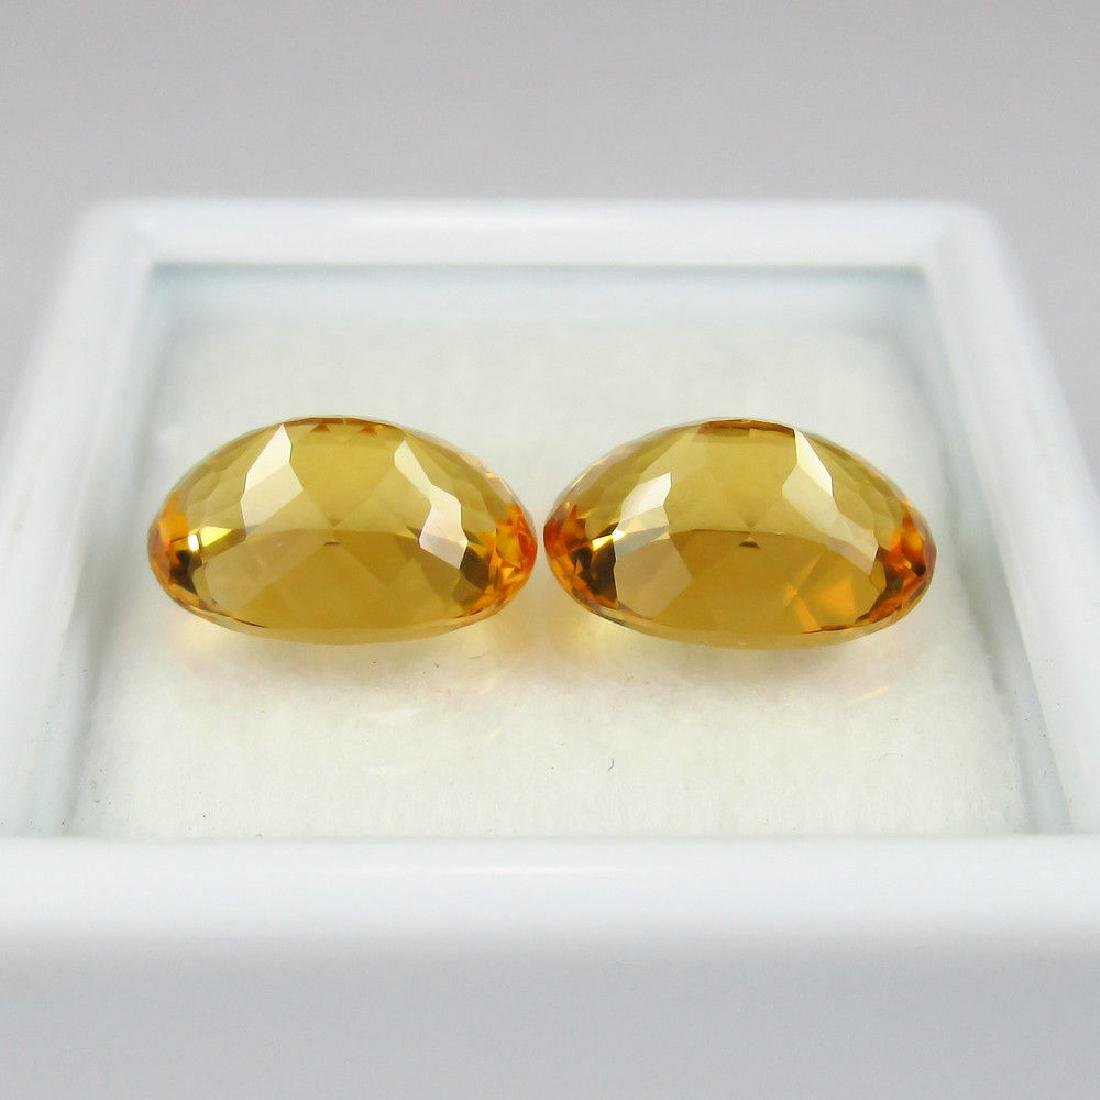 4.20 Ctw Natural Loose Matching Oval Citrine Pair - 2